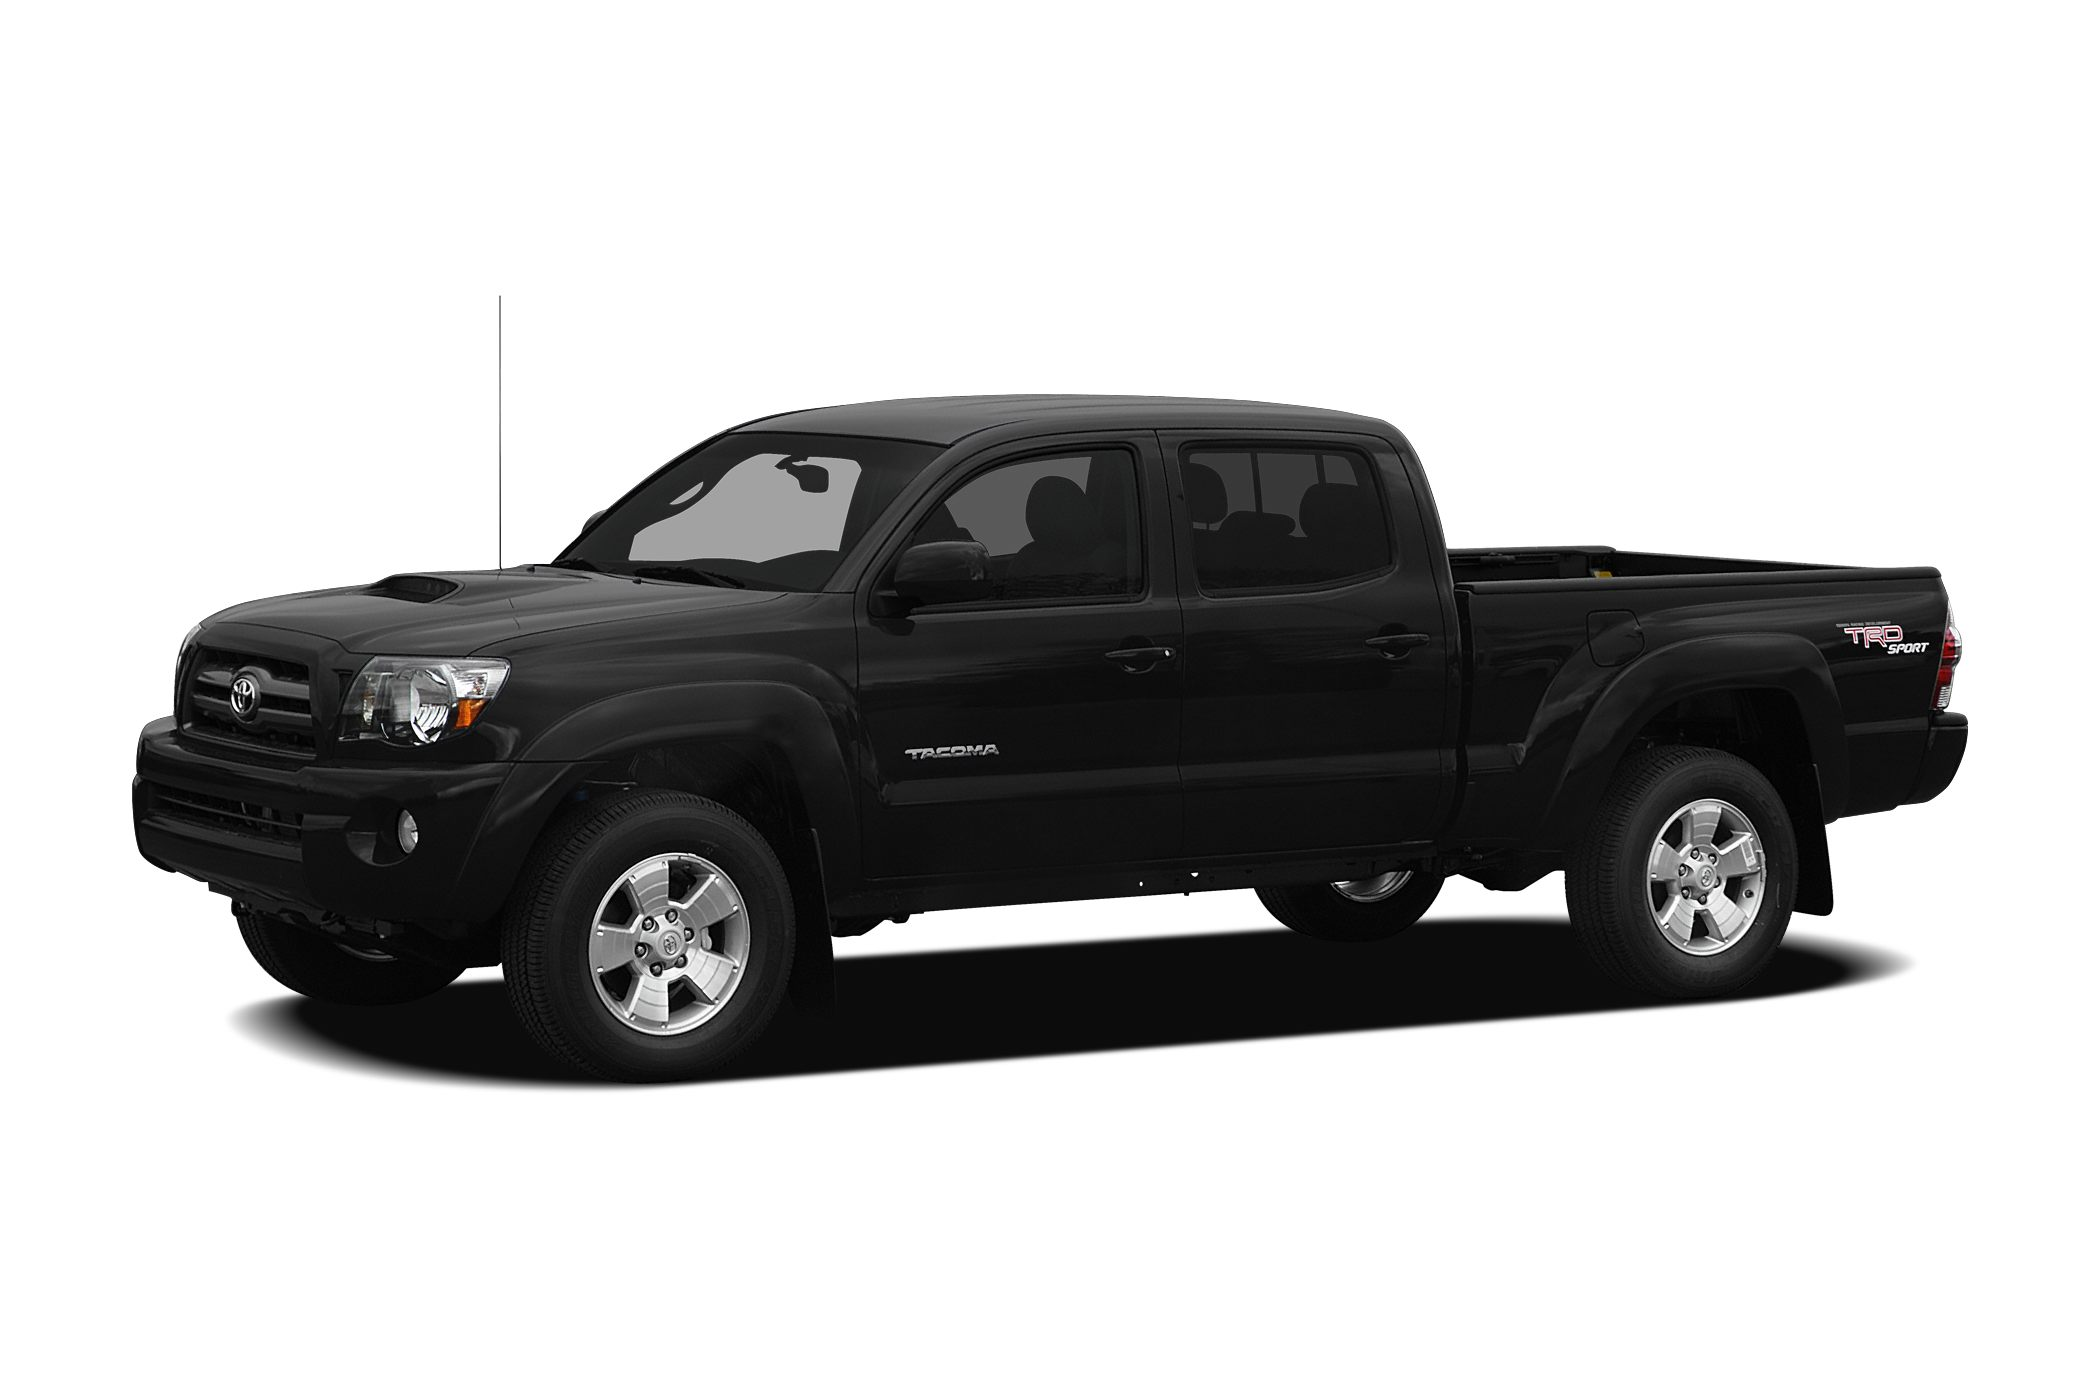 2010 Toyota Tacoma Base Snatch a steal on this 2010 Toyota Tacoma DBL CAB 4WD AT while we have it